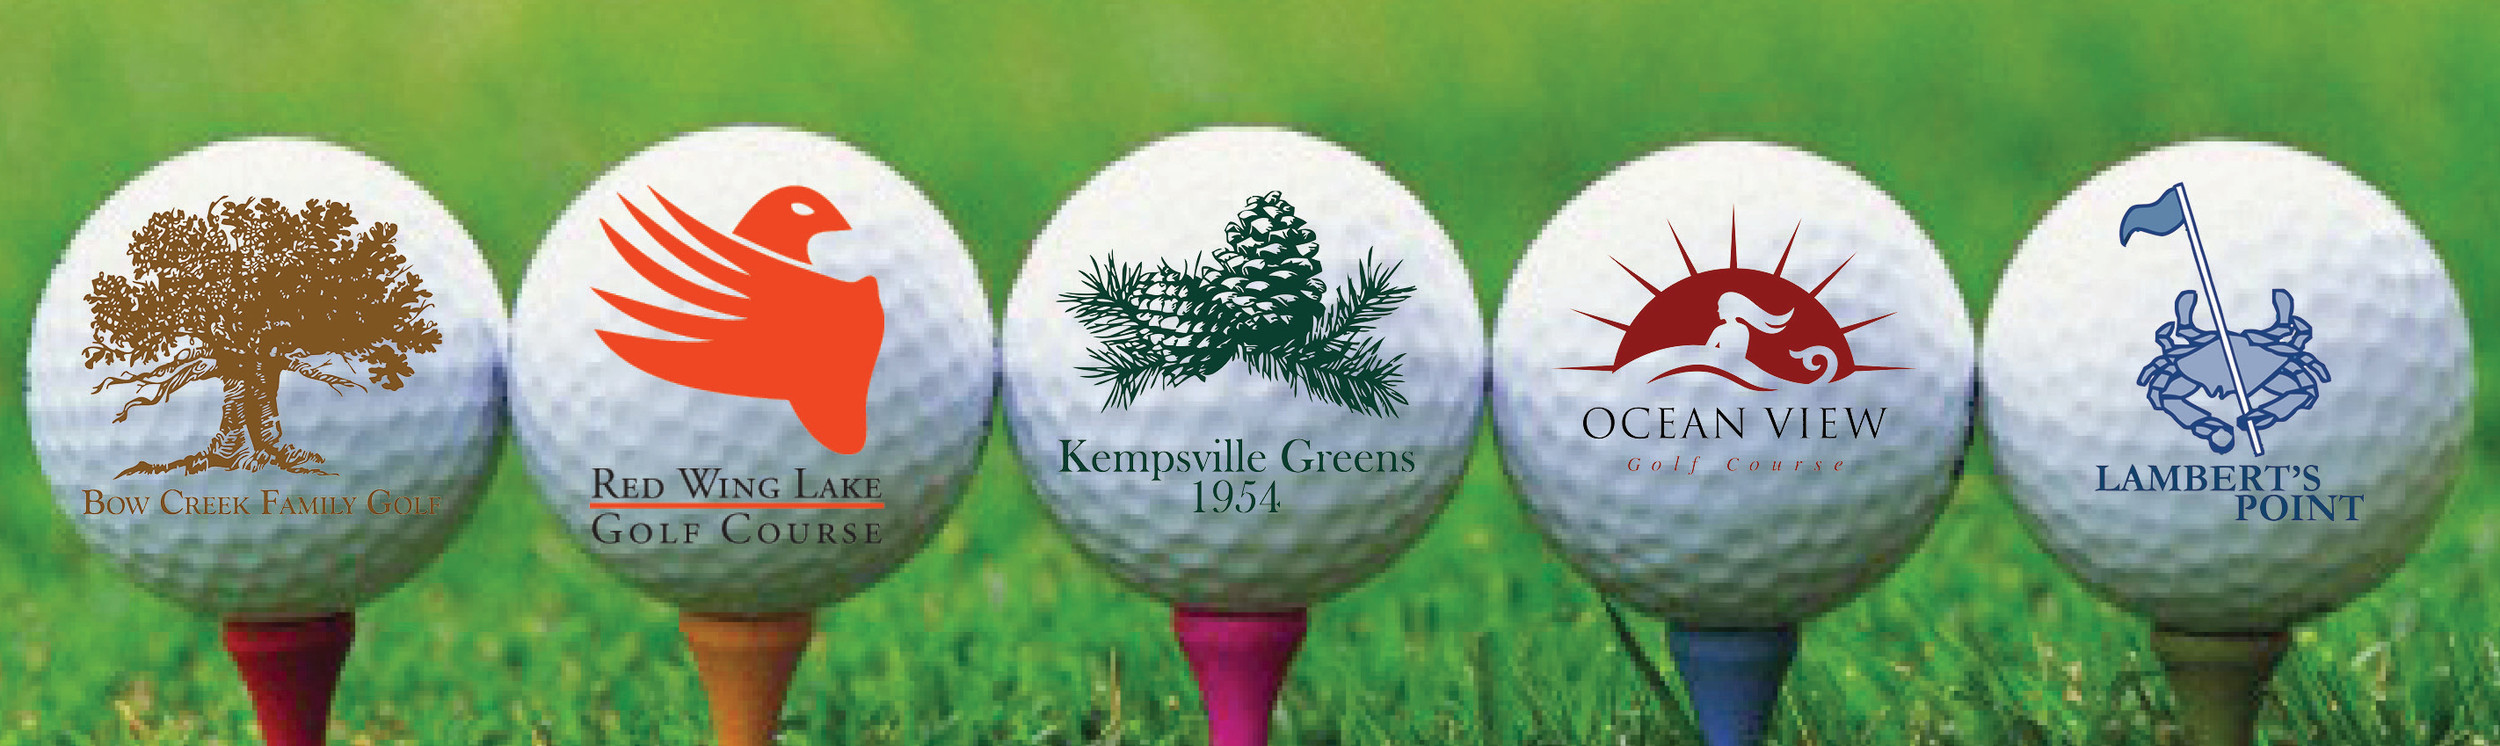 DONATION REQUESTS | Best Golf Courses in Virginia Beach and